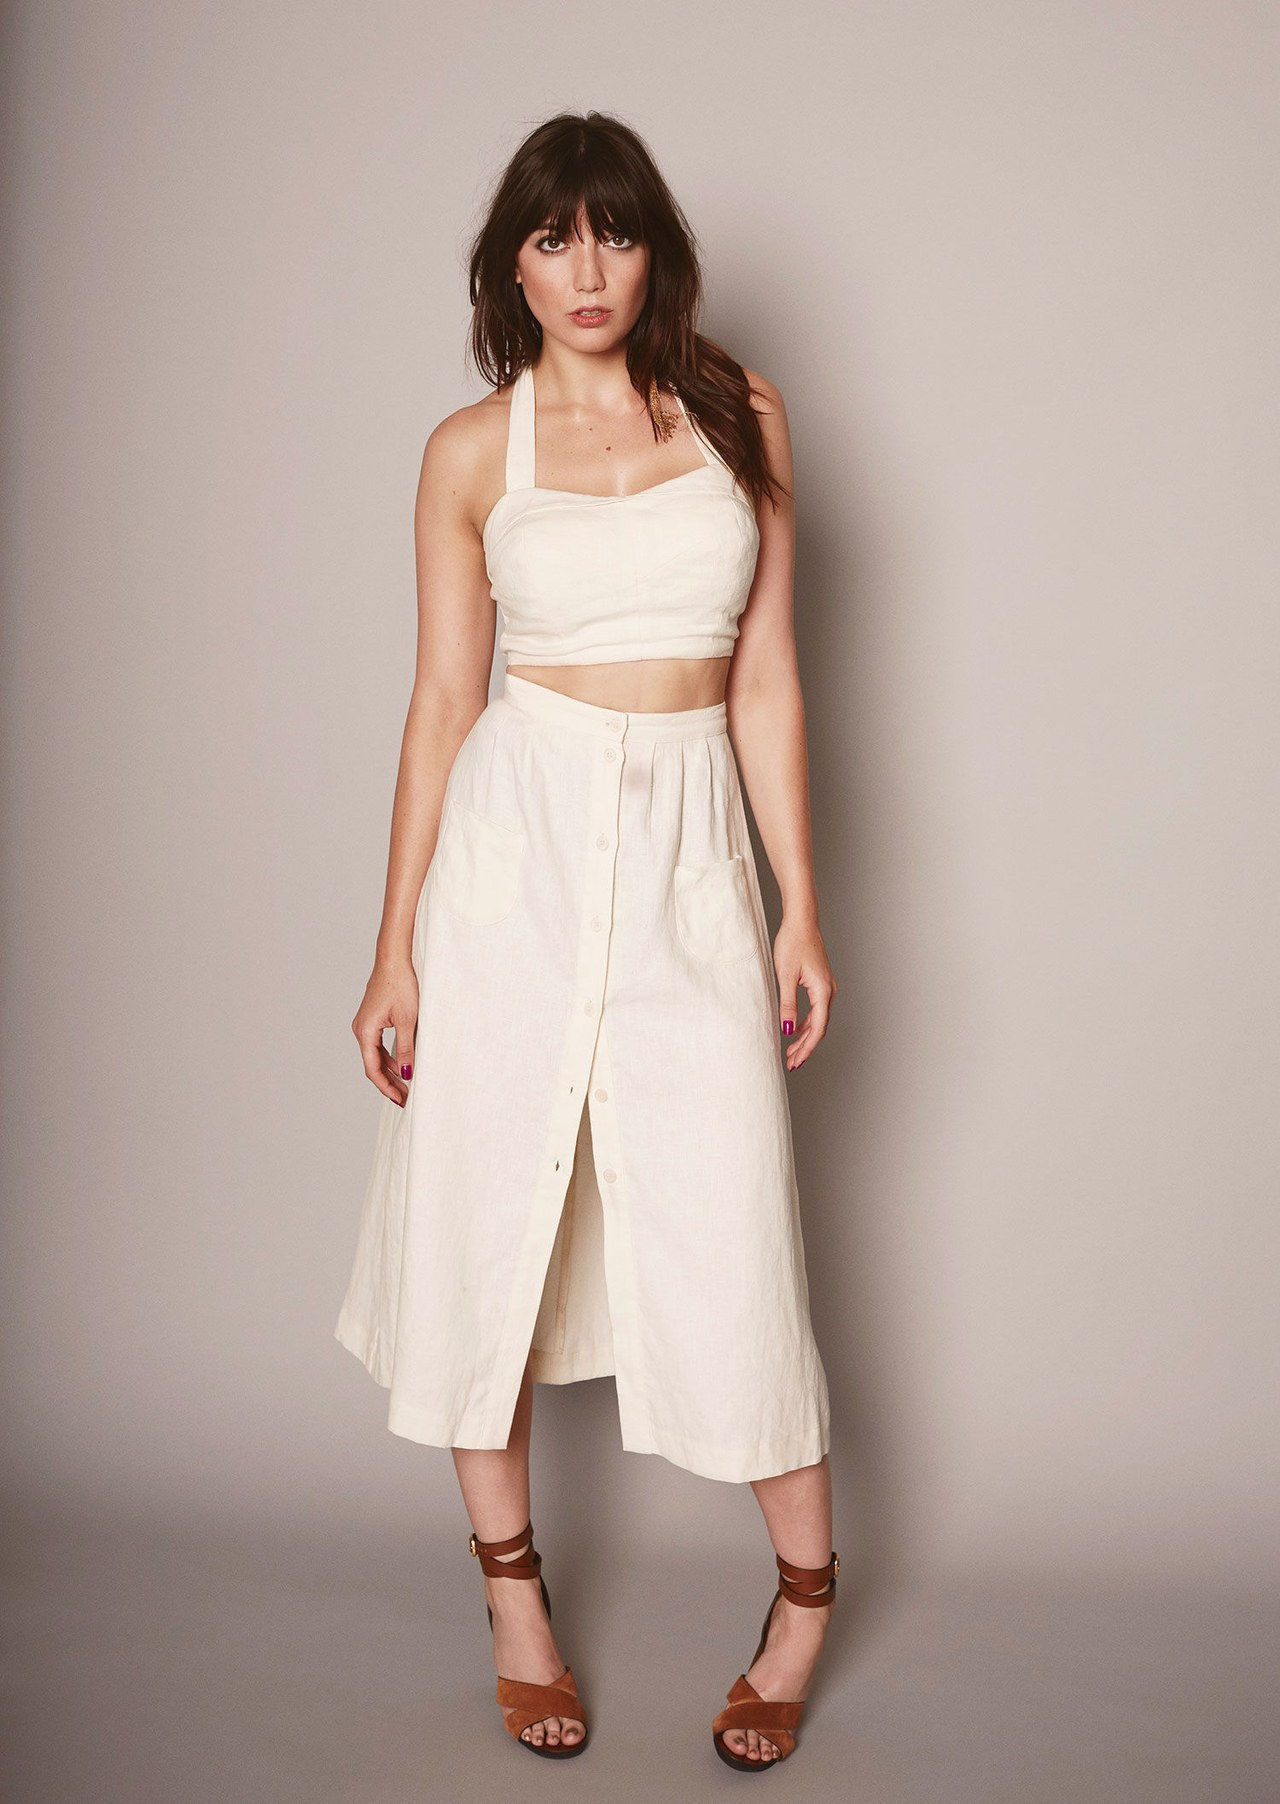 reformacija big bust collection white crop top